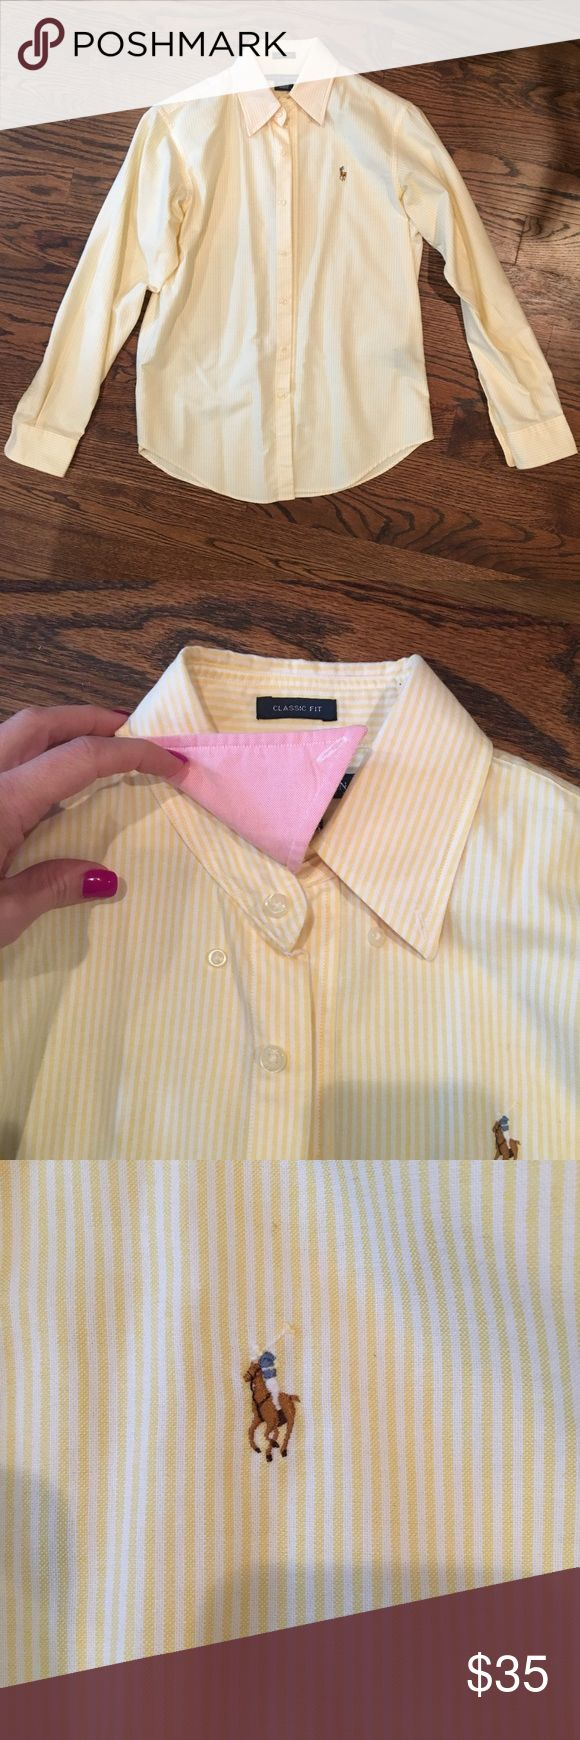 Ralph Lauren classic fit women's Oxford shirt Ralph Lauren classic fit women's Oxford shirt in yellow and white stripe size 8. Button-down collar and the underneath of the collar is a cute pink color. Excellent condition from a pet free/smoke free home. Ralph Lauren Tops Button Down Shirts